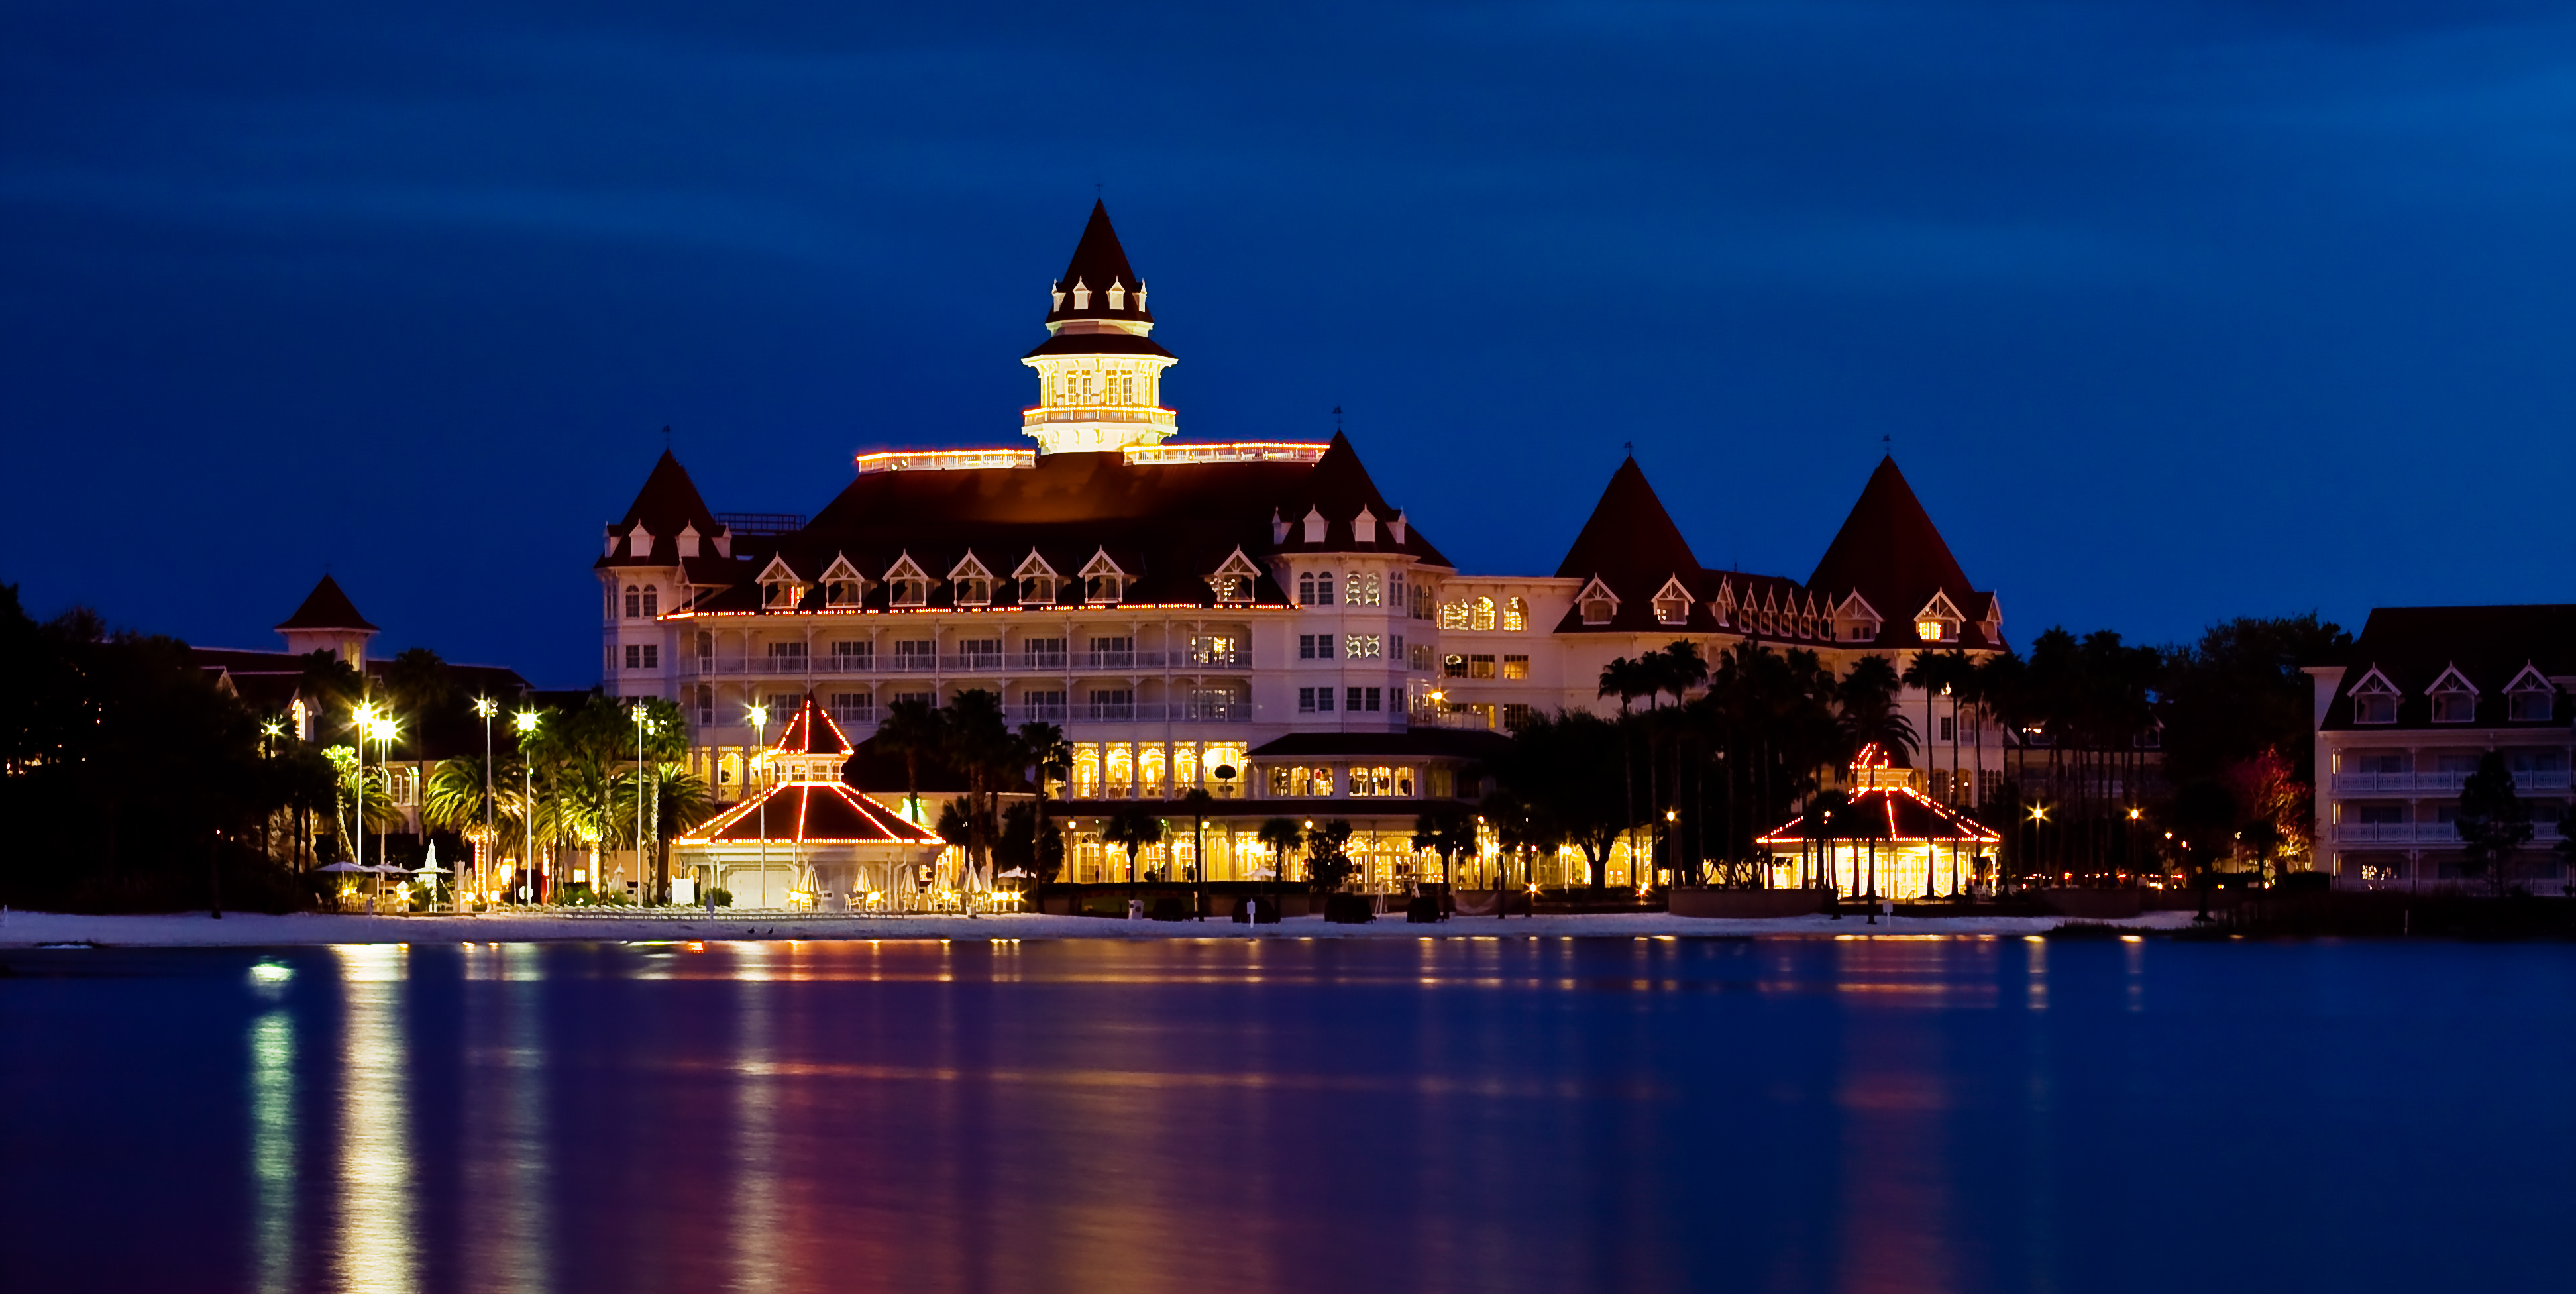 Disney Grand Floridian Hotel And Spa